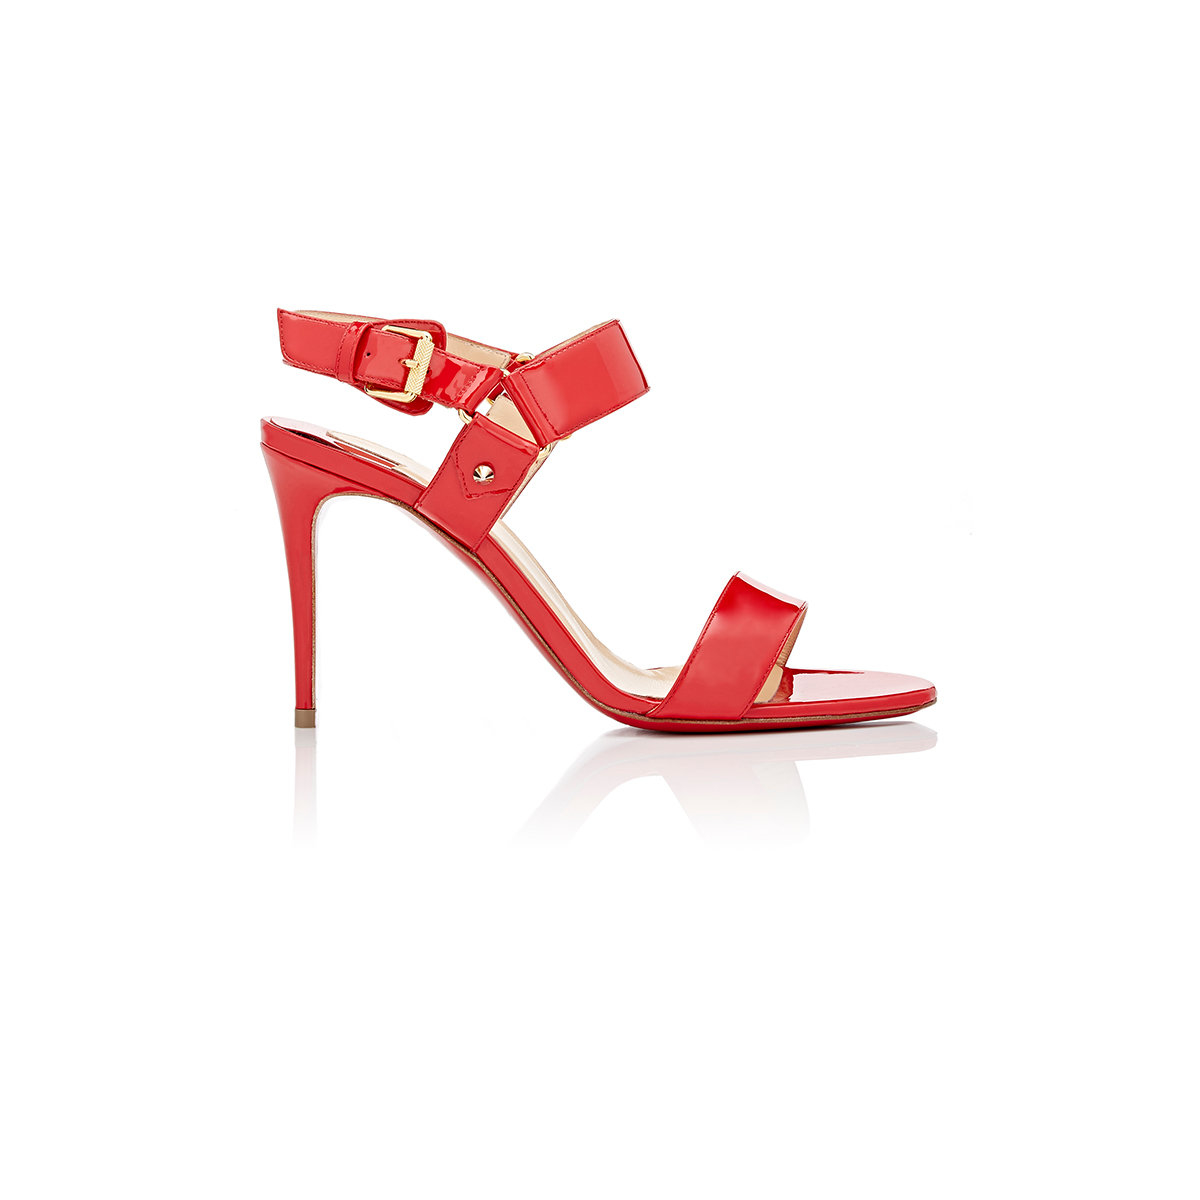 16aa5e3801f Lyst - Christian Louboutin Sova Buckled Patent Leather Sandals in Red